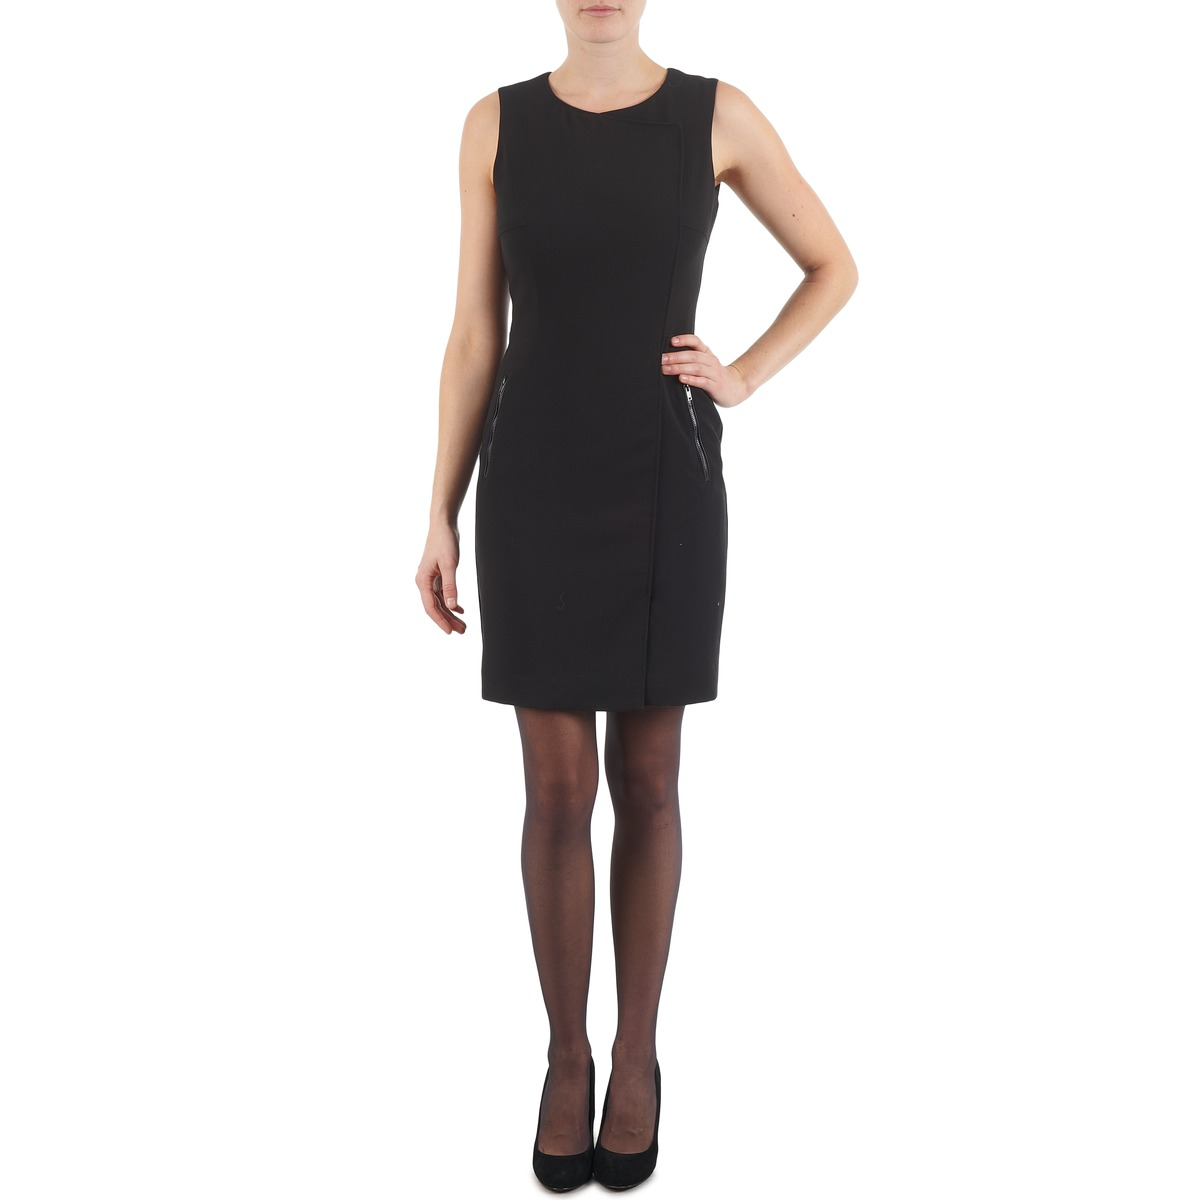 ESPRIT COLLECTION DRESSES women dresses esprit dress dresses woven black ,esprit usa,outlet KAUCFIZ